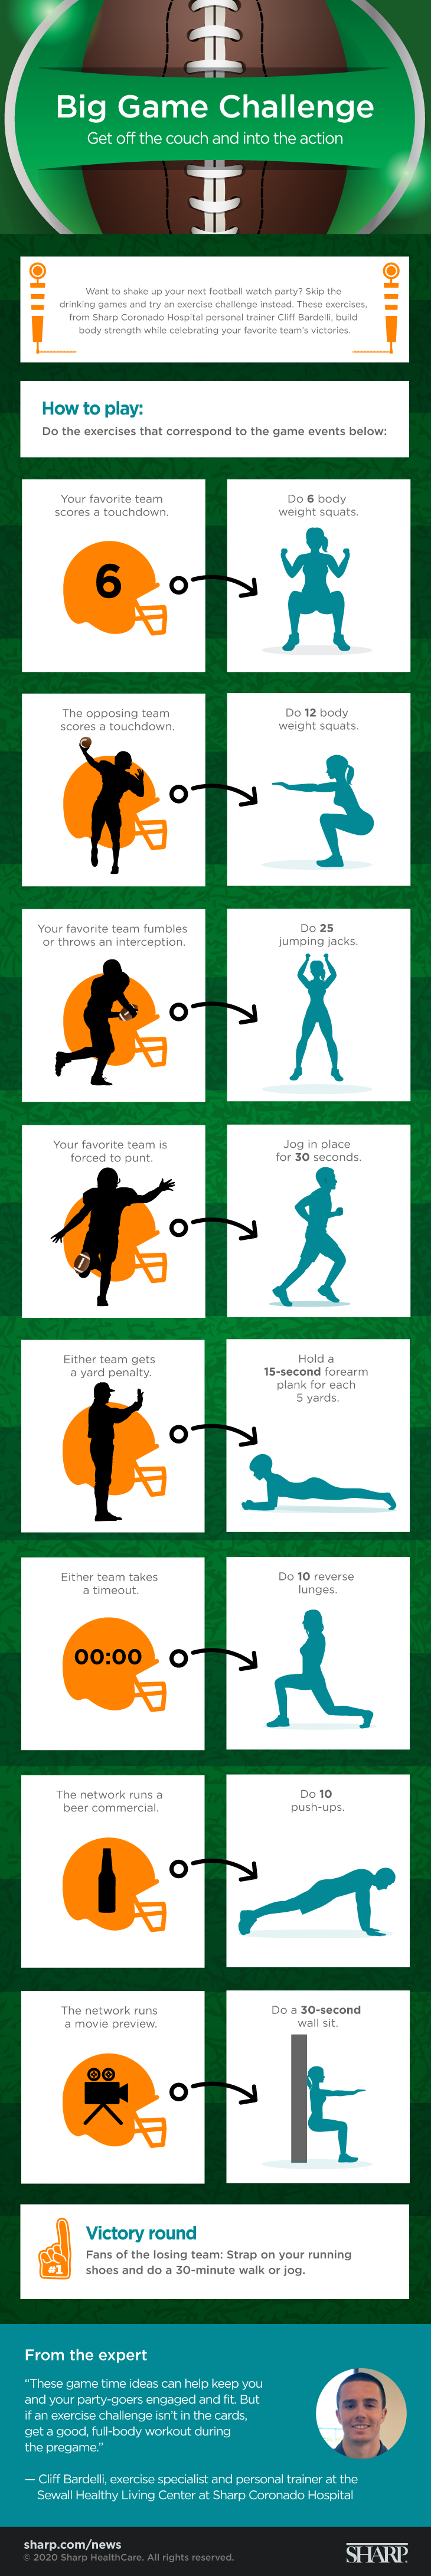 Big Game Challenge (infographic). Get off the couch and into the action. Want to shake up your next football watch party? Skip the drinking games and try an exercise challenge instead. These exercises, from Sharp Coronado Hospital personal trainer Cliff Bardelli, build body strength while celebrating your favorite team's victories. How to play: Do the exercises that correspond to the game events below. Your favorite team scores a touchdown: do 6 body weight squats. The opposing team scores a touchdown: do 12 body weight squats. Your favorite team fumbles or throws an interception: do 25 jumping jacks. Your favorite team is forces to punt: jog in place for 30 seconds. Either team gets a yard penalty: hold a 15-second forearm plank for each 5 yards. Either team takes a timeout: do 10 reverse lunges. The network runs a beer commercial: do 10 push-ups. The network runs a movie preview: do a 30-second wall sit. Victory round: fans of the losing team must strap on their running shoes and do a 30-minute walk or jog. From the expert: These game time ideas can help keep you and your party-goers engaged and fit. But if an exercise challenge isn't in the cards, get a good, full-body workout during the pregame. - Cliff Bardelli, exercise specialist and personal trainer at the Sewall Healthy Living Center at Sharp Coronado Hospital. sharp.com/news. 2020 Sharp HealthCare. All rights reserved.